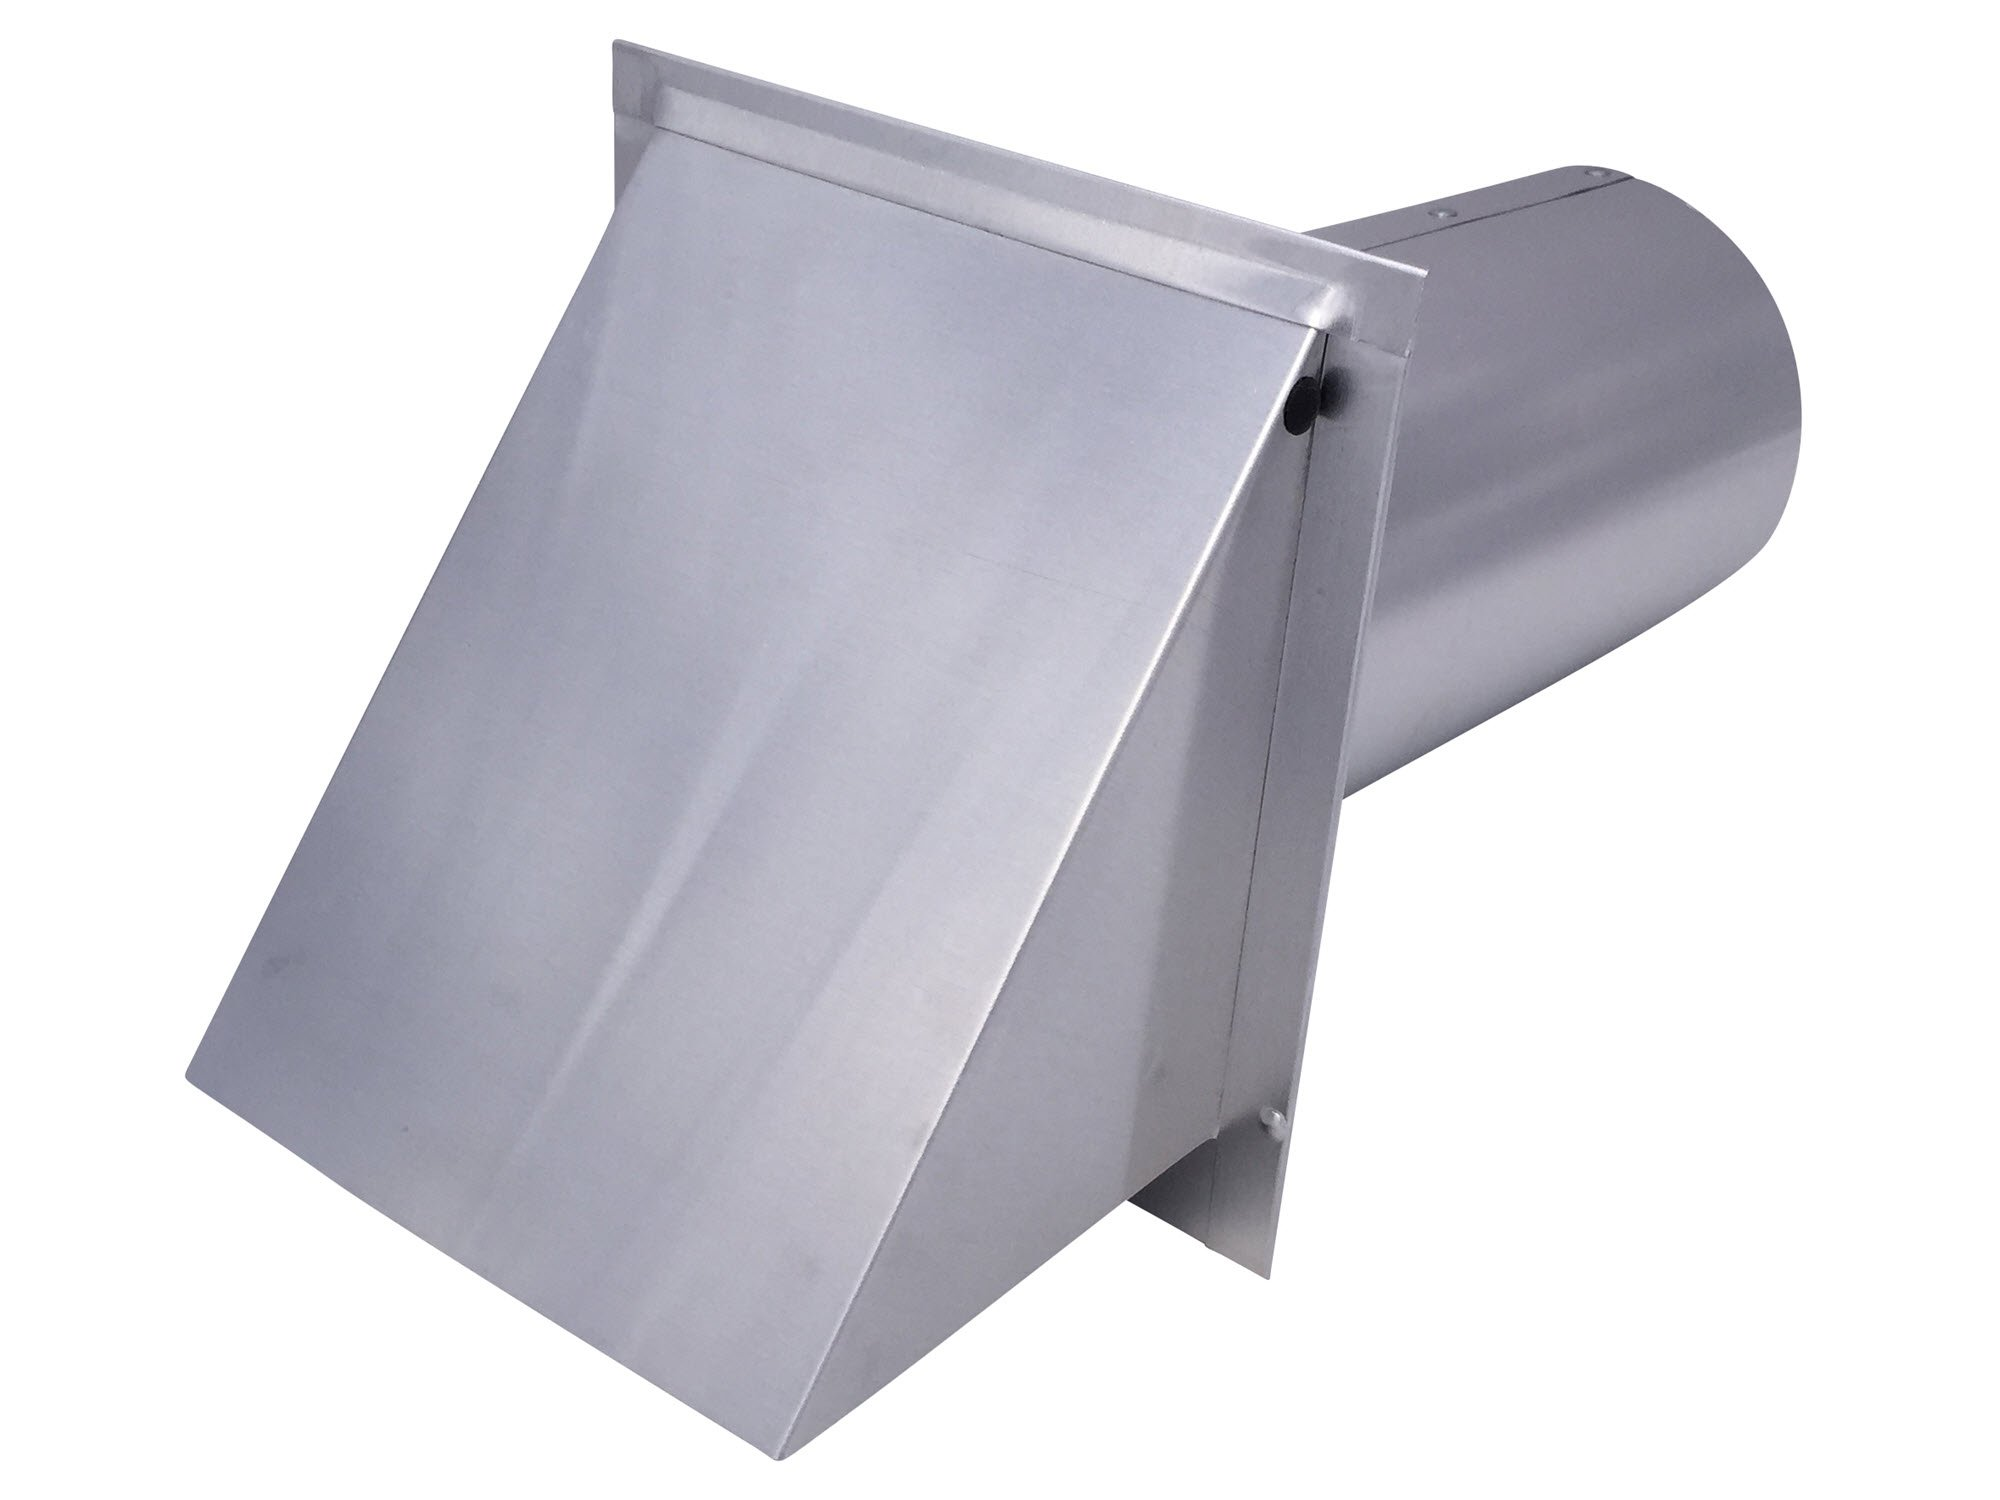 Dryer Wall Vent Aluminum (Standard 4 Inch Diameter Exhaust) - Vent Works